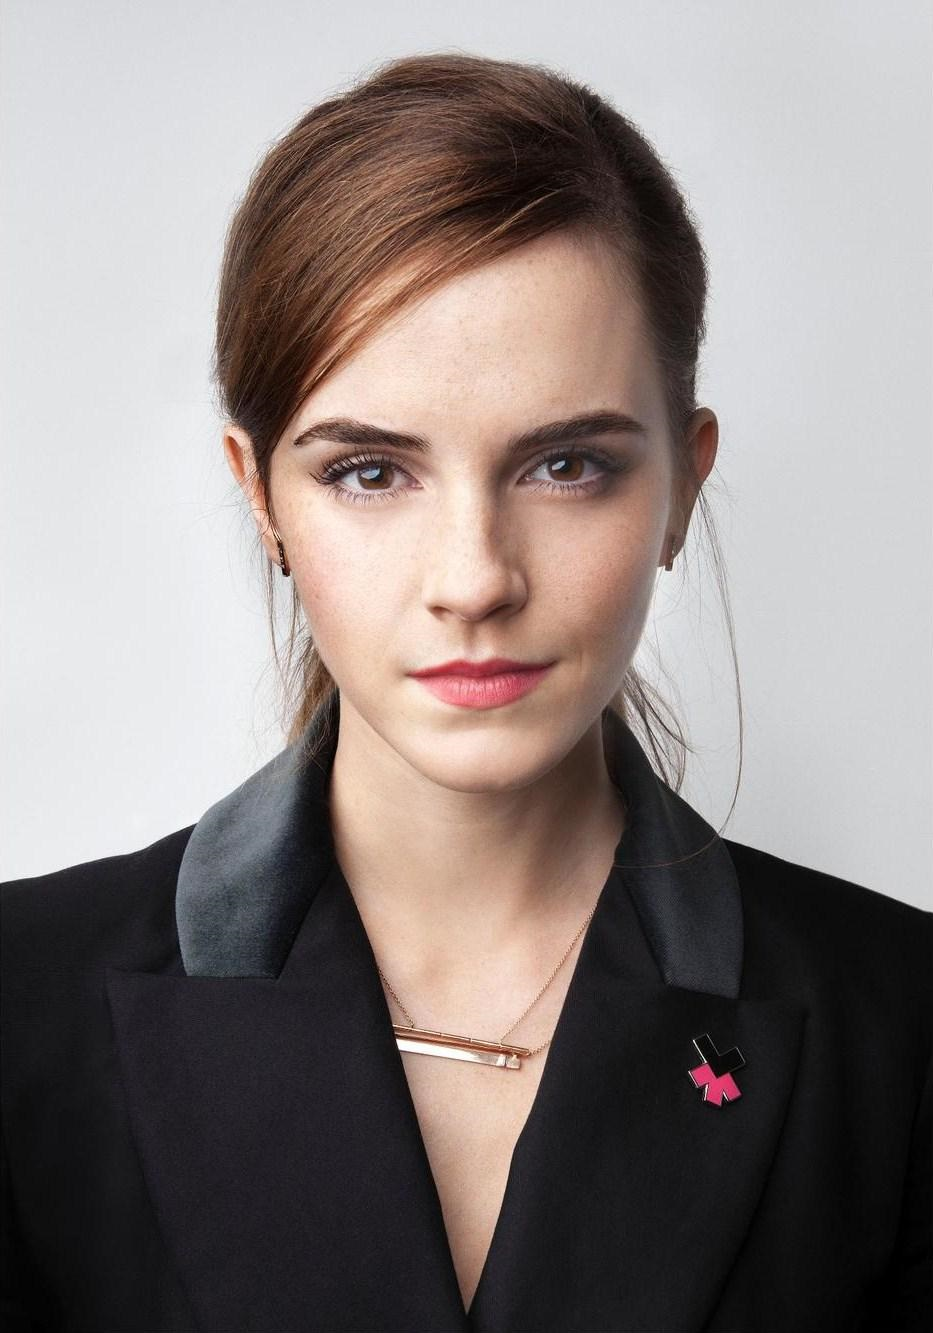 flur-magazine-10-mujeres-diseño-arquitectura-emma-watson she knows